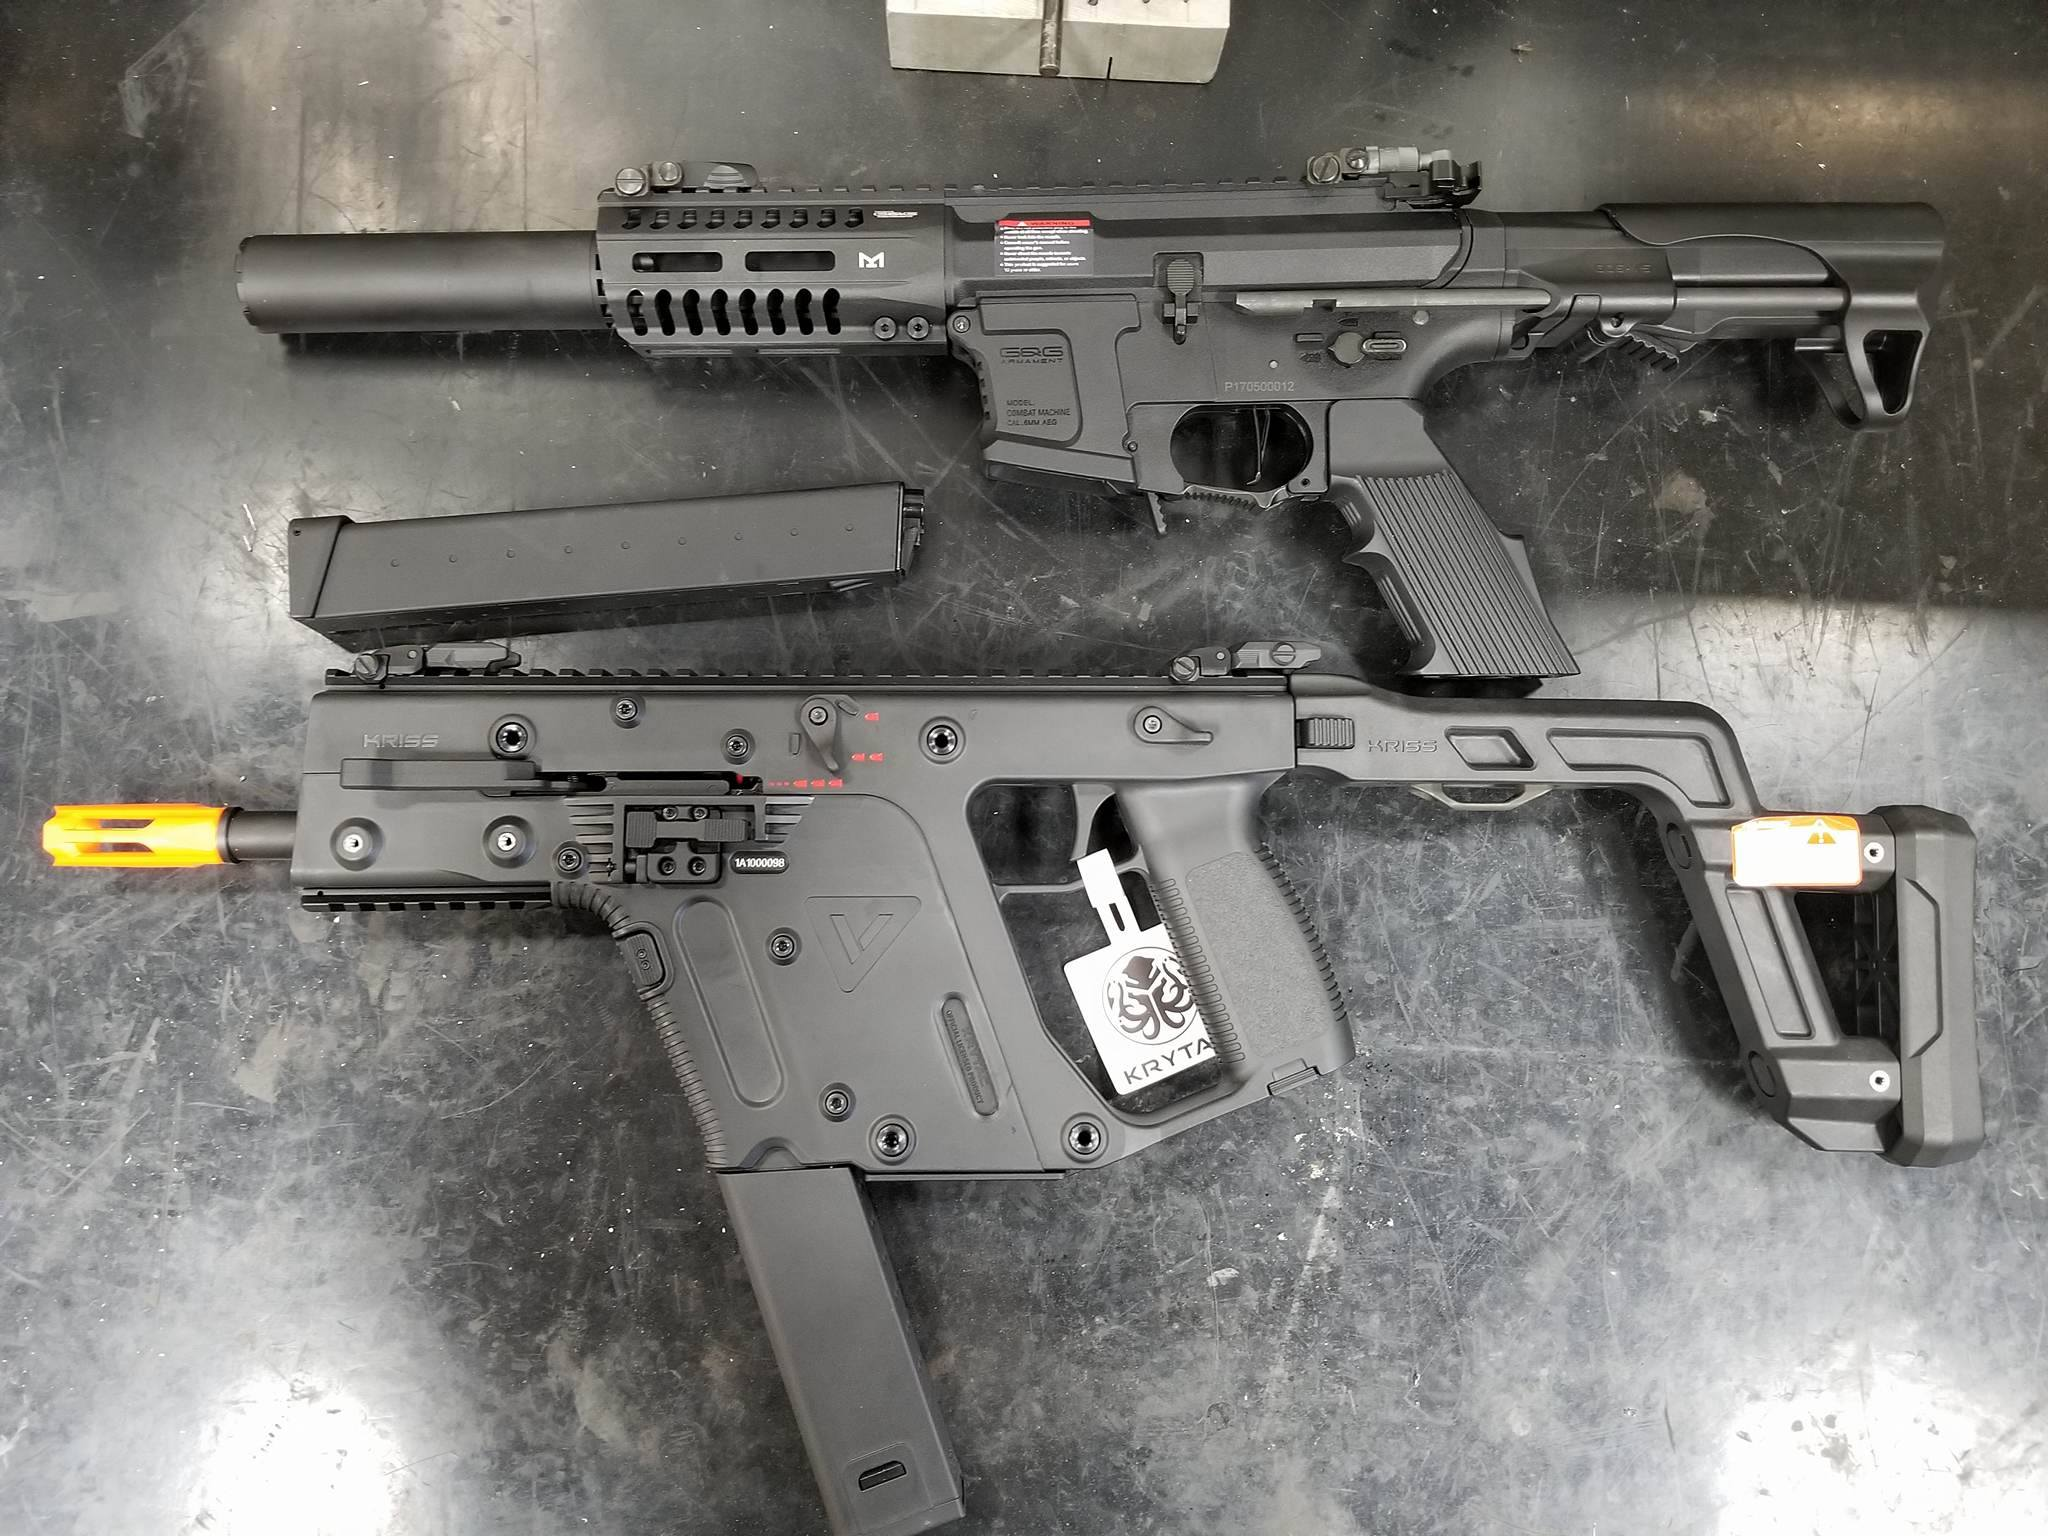 2048x1536 I Own The Kriss Vector Aeg And The Gampg Arp 9. Any Questions About